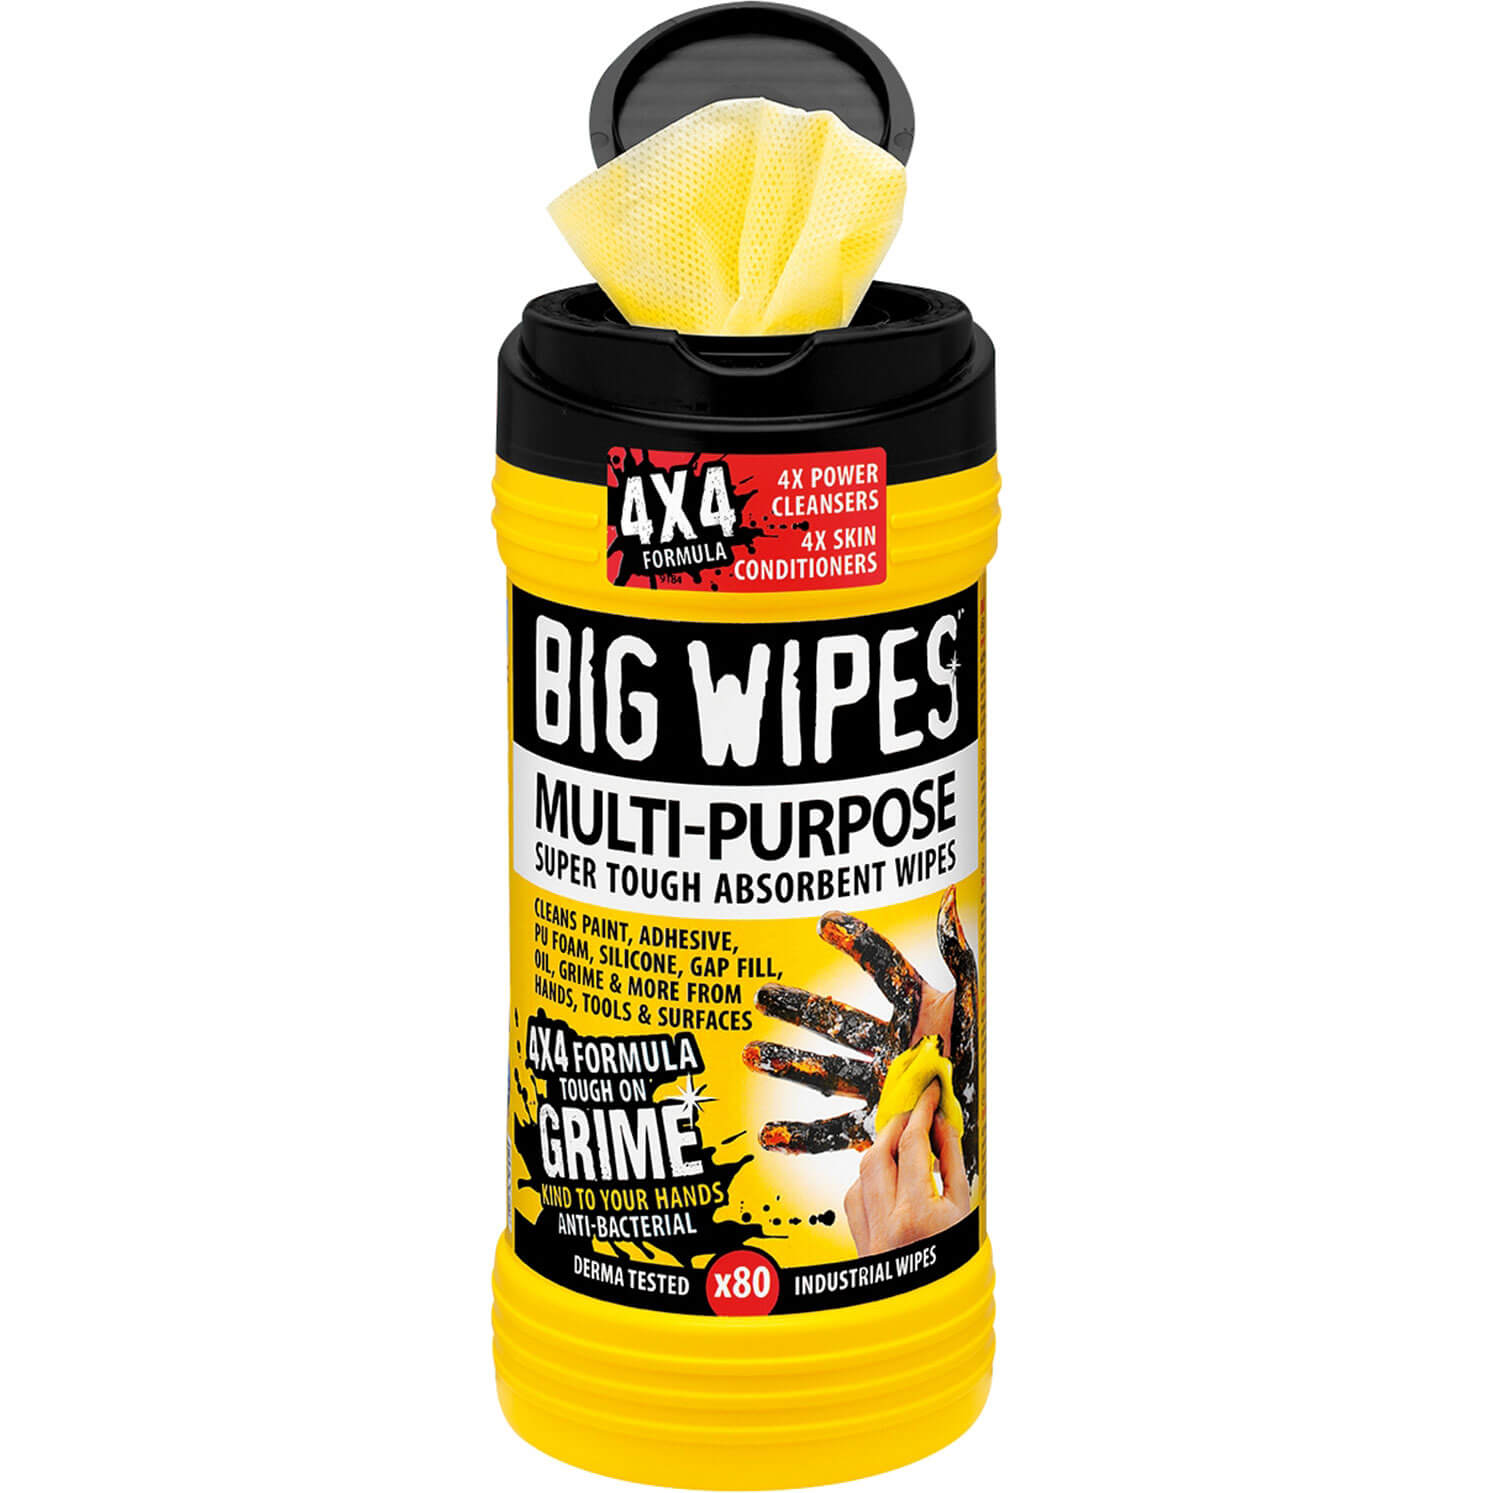 Big Wipes Black Top 4x4 Multi Purpose Hand Cleaning Wipes Tub of 80